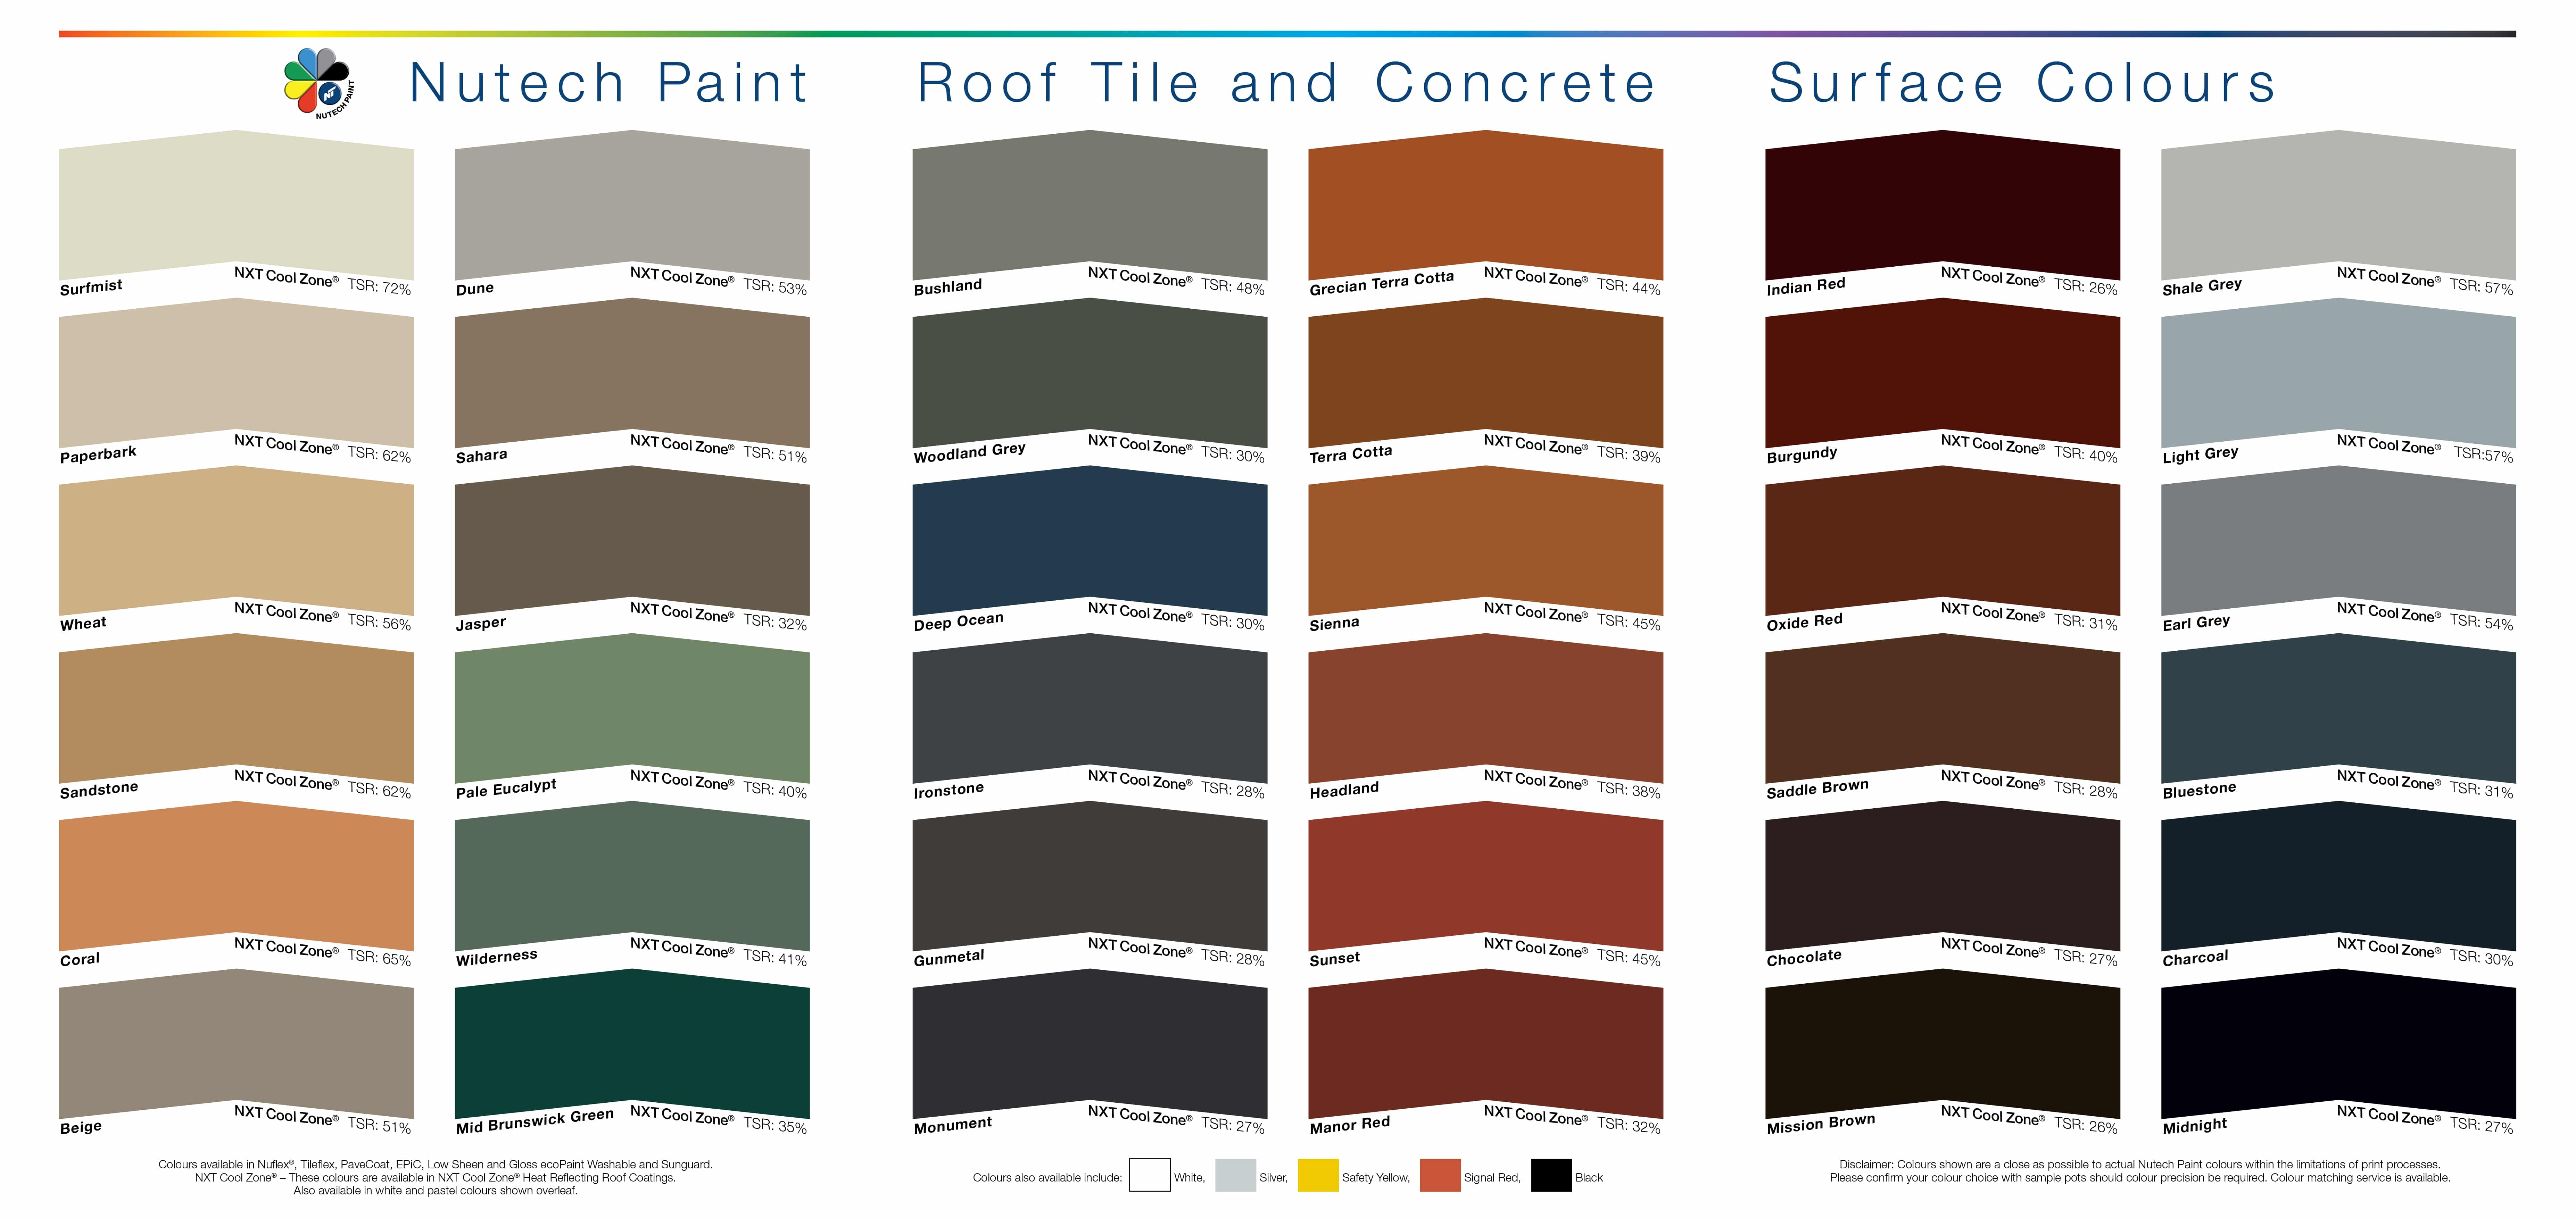 Colour Chart From Nutech Paint For Your Roof Brisco Roofing